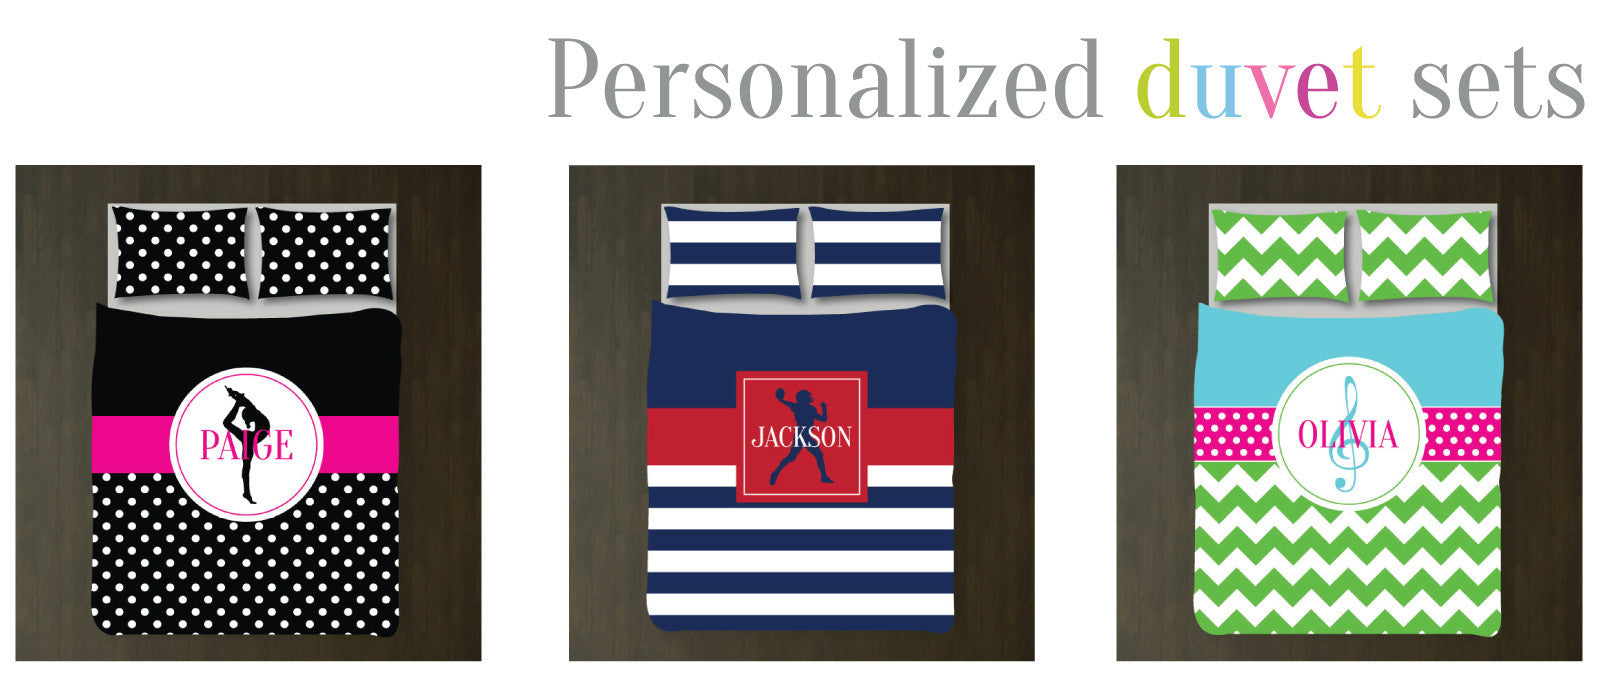 Personalized duvet sets